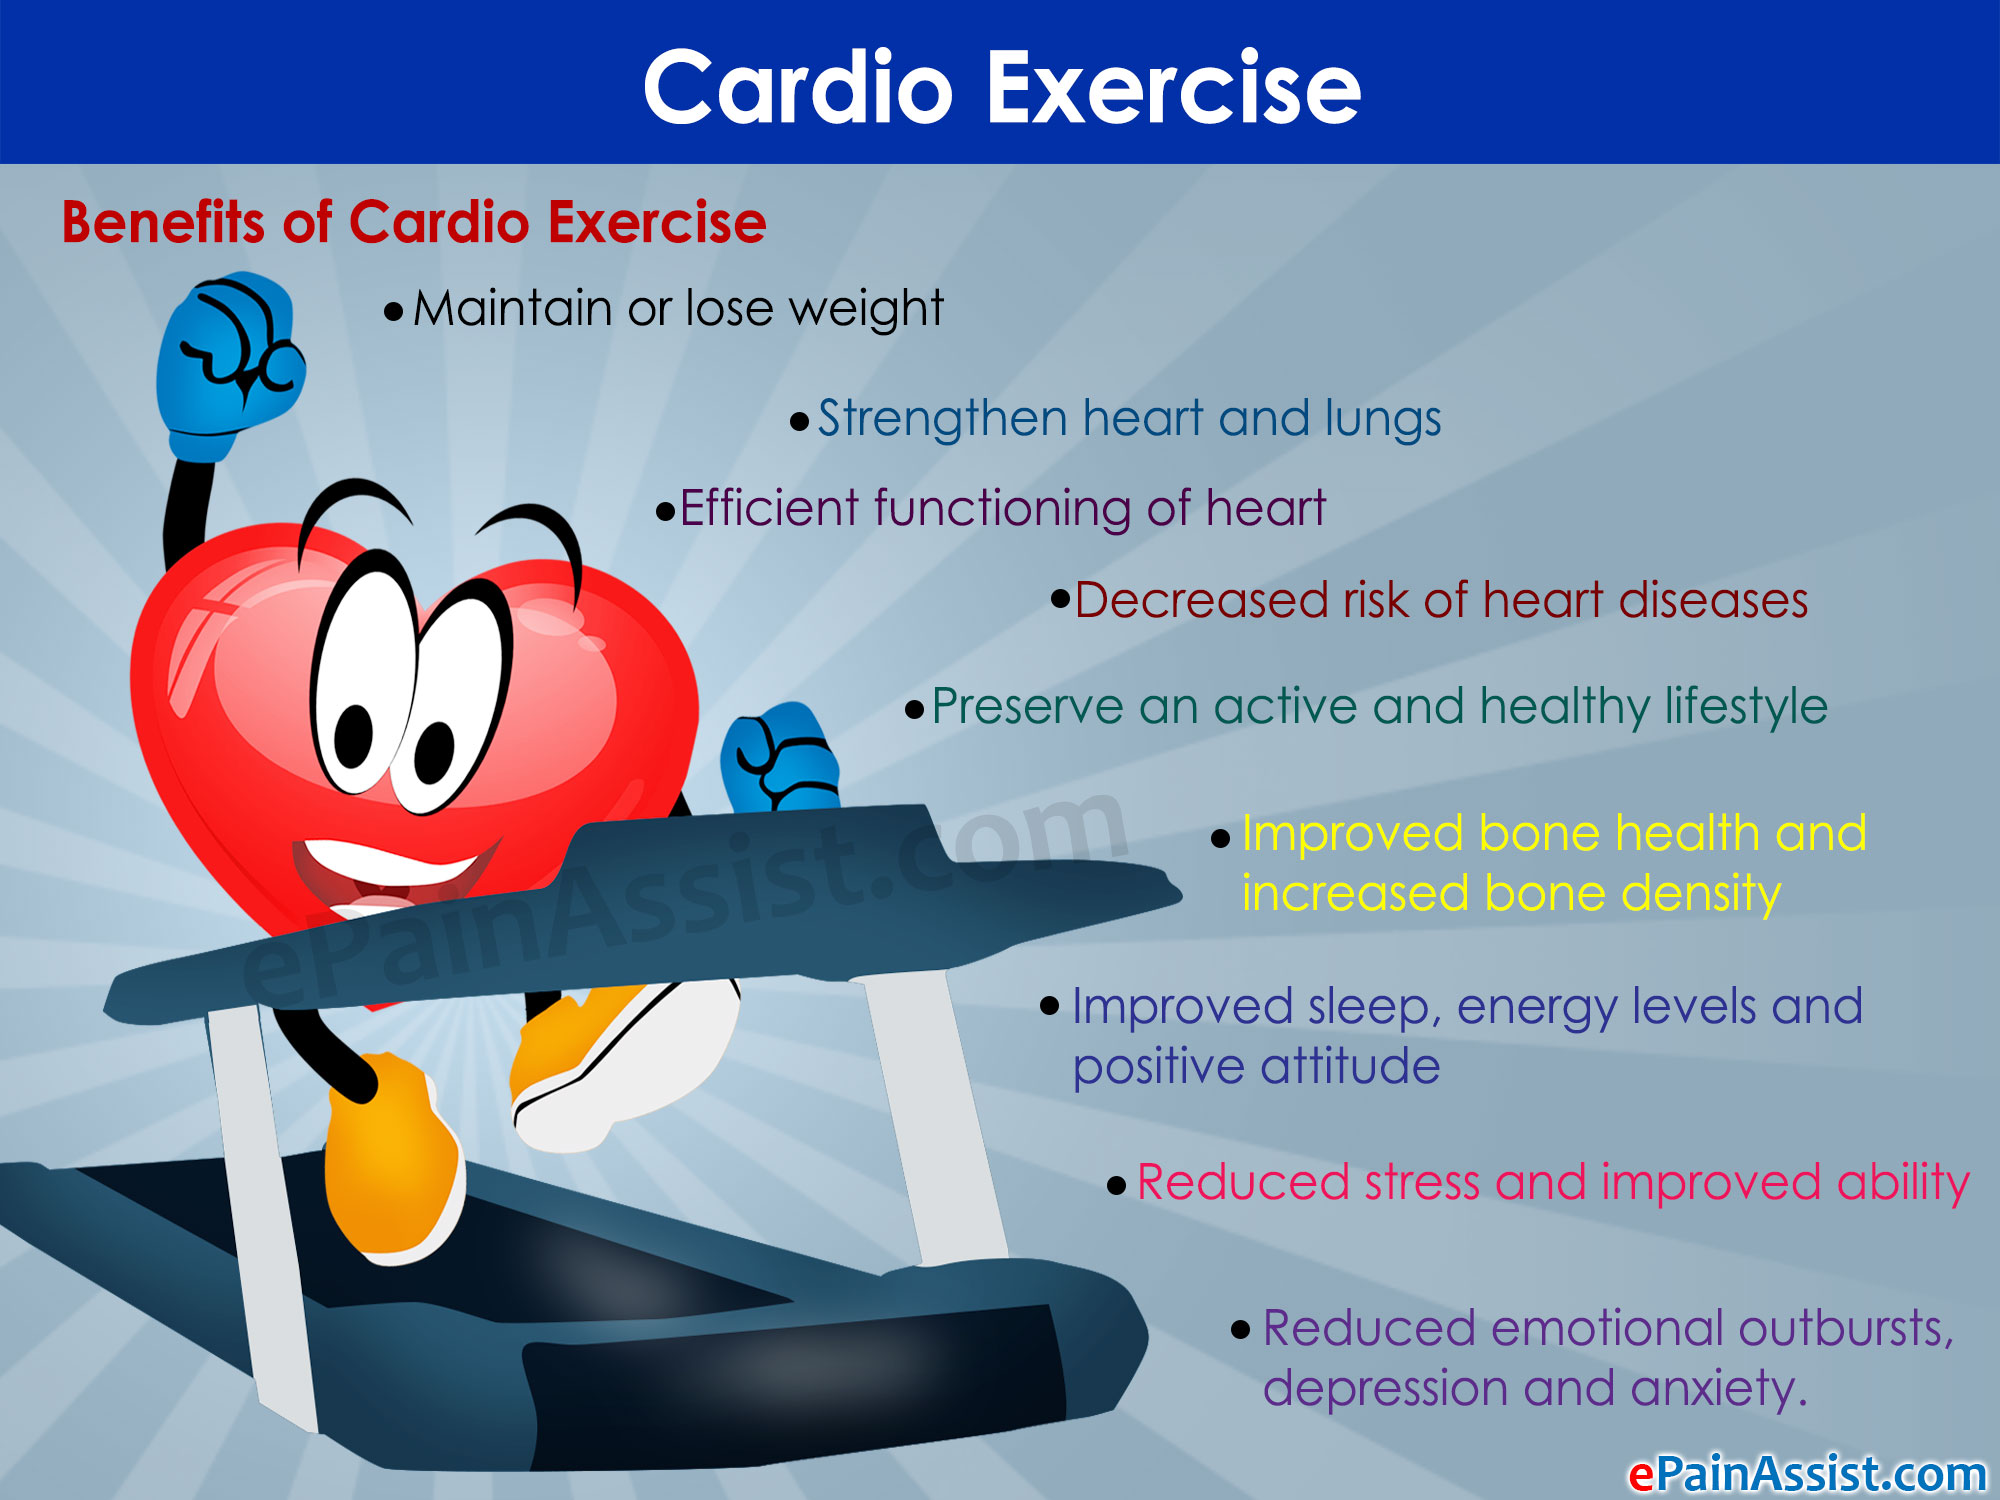 exercising and its benefits essay Exercising regularly has wide-ranging physical, emotional and social health benefits you need to exercise safely to remain healthy and injury-free.